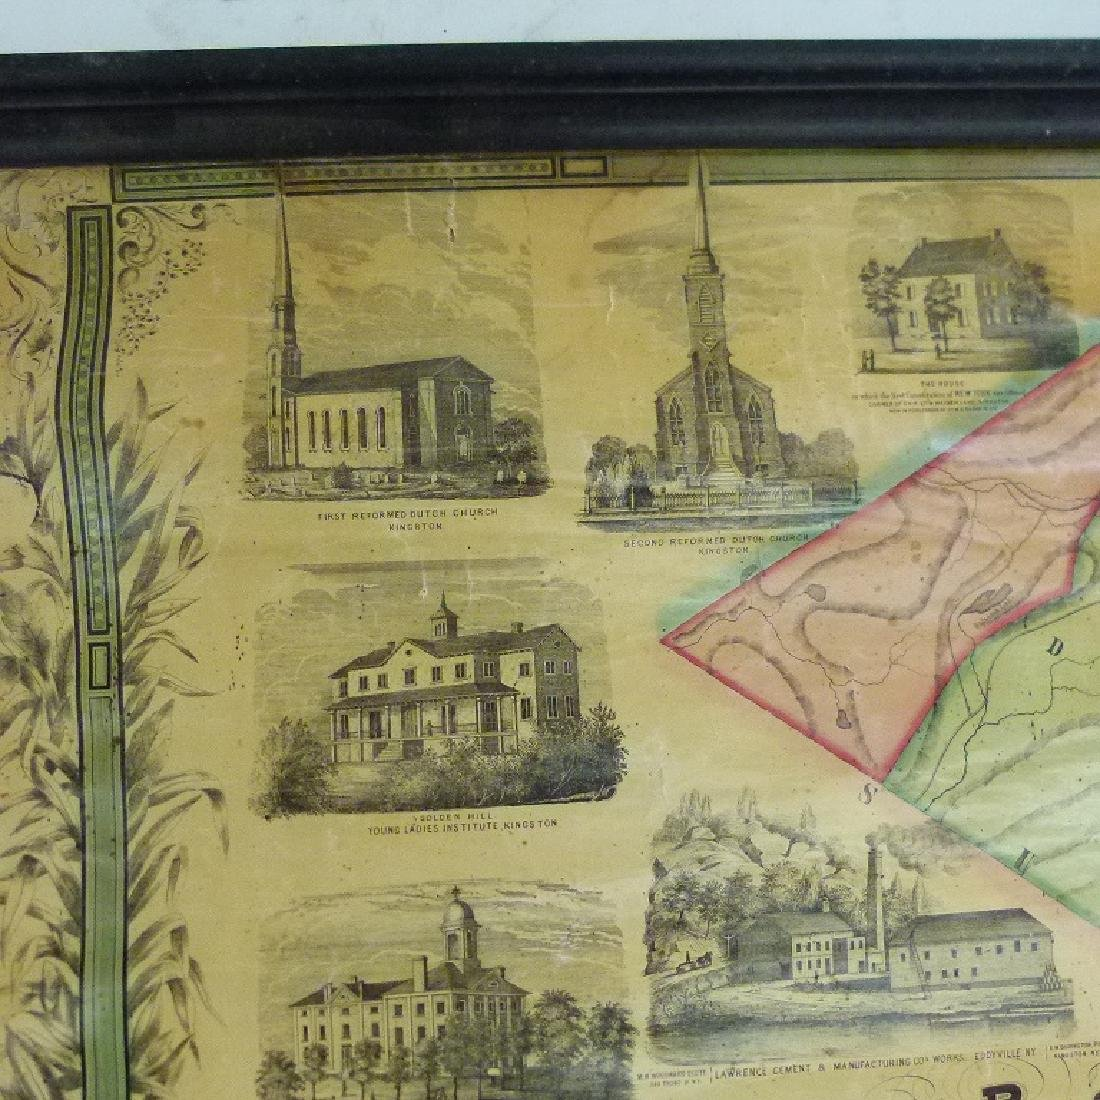 MAP OF ULSTER COUNTY NEW YORK, 1853 - 6